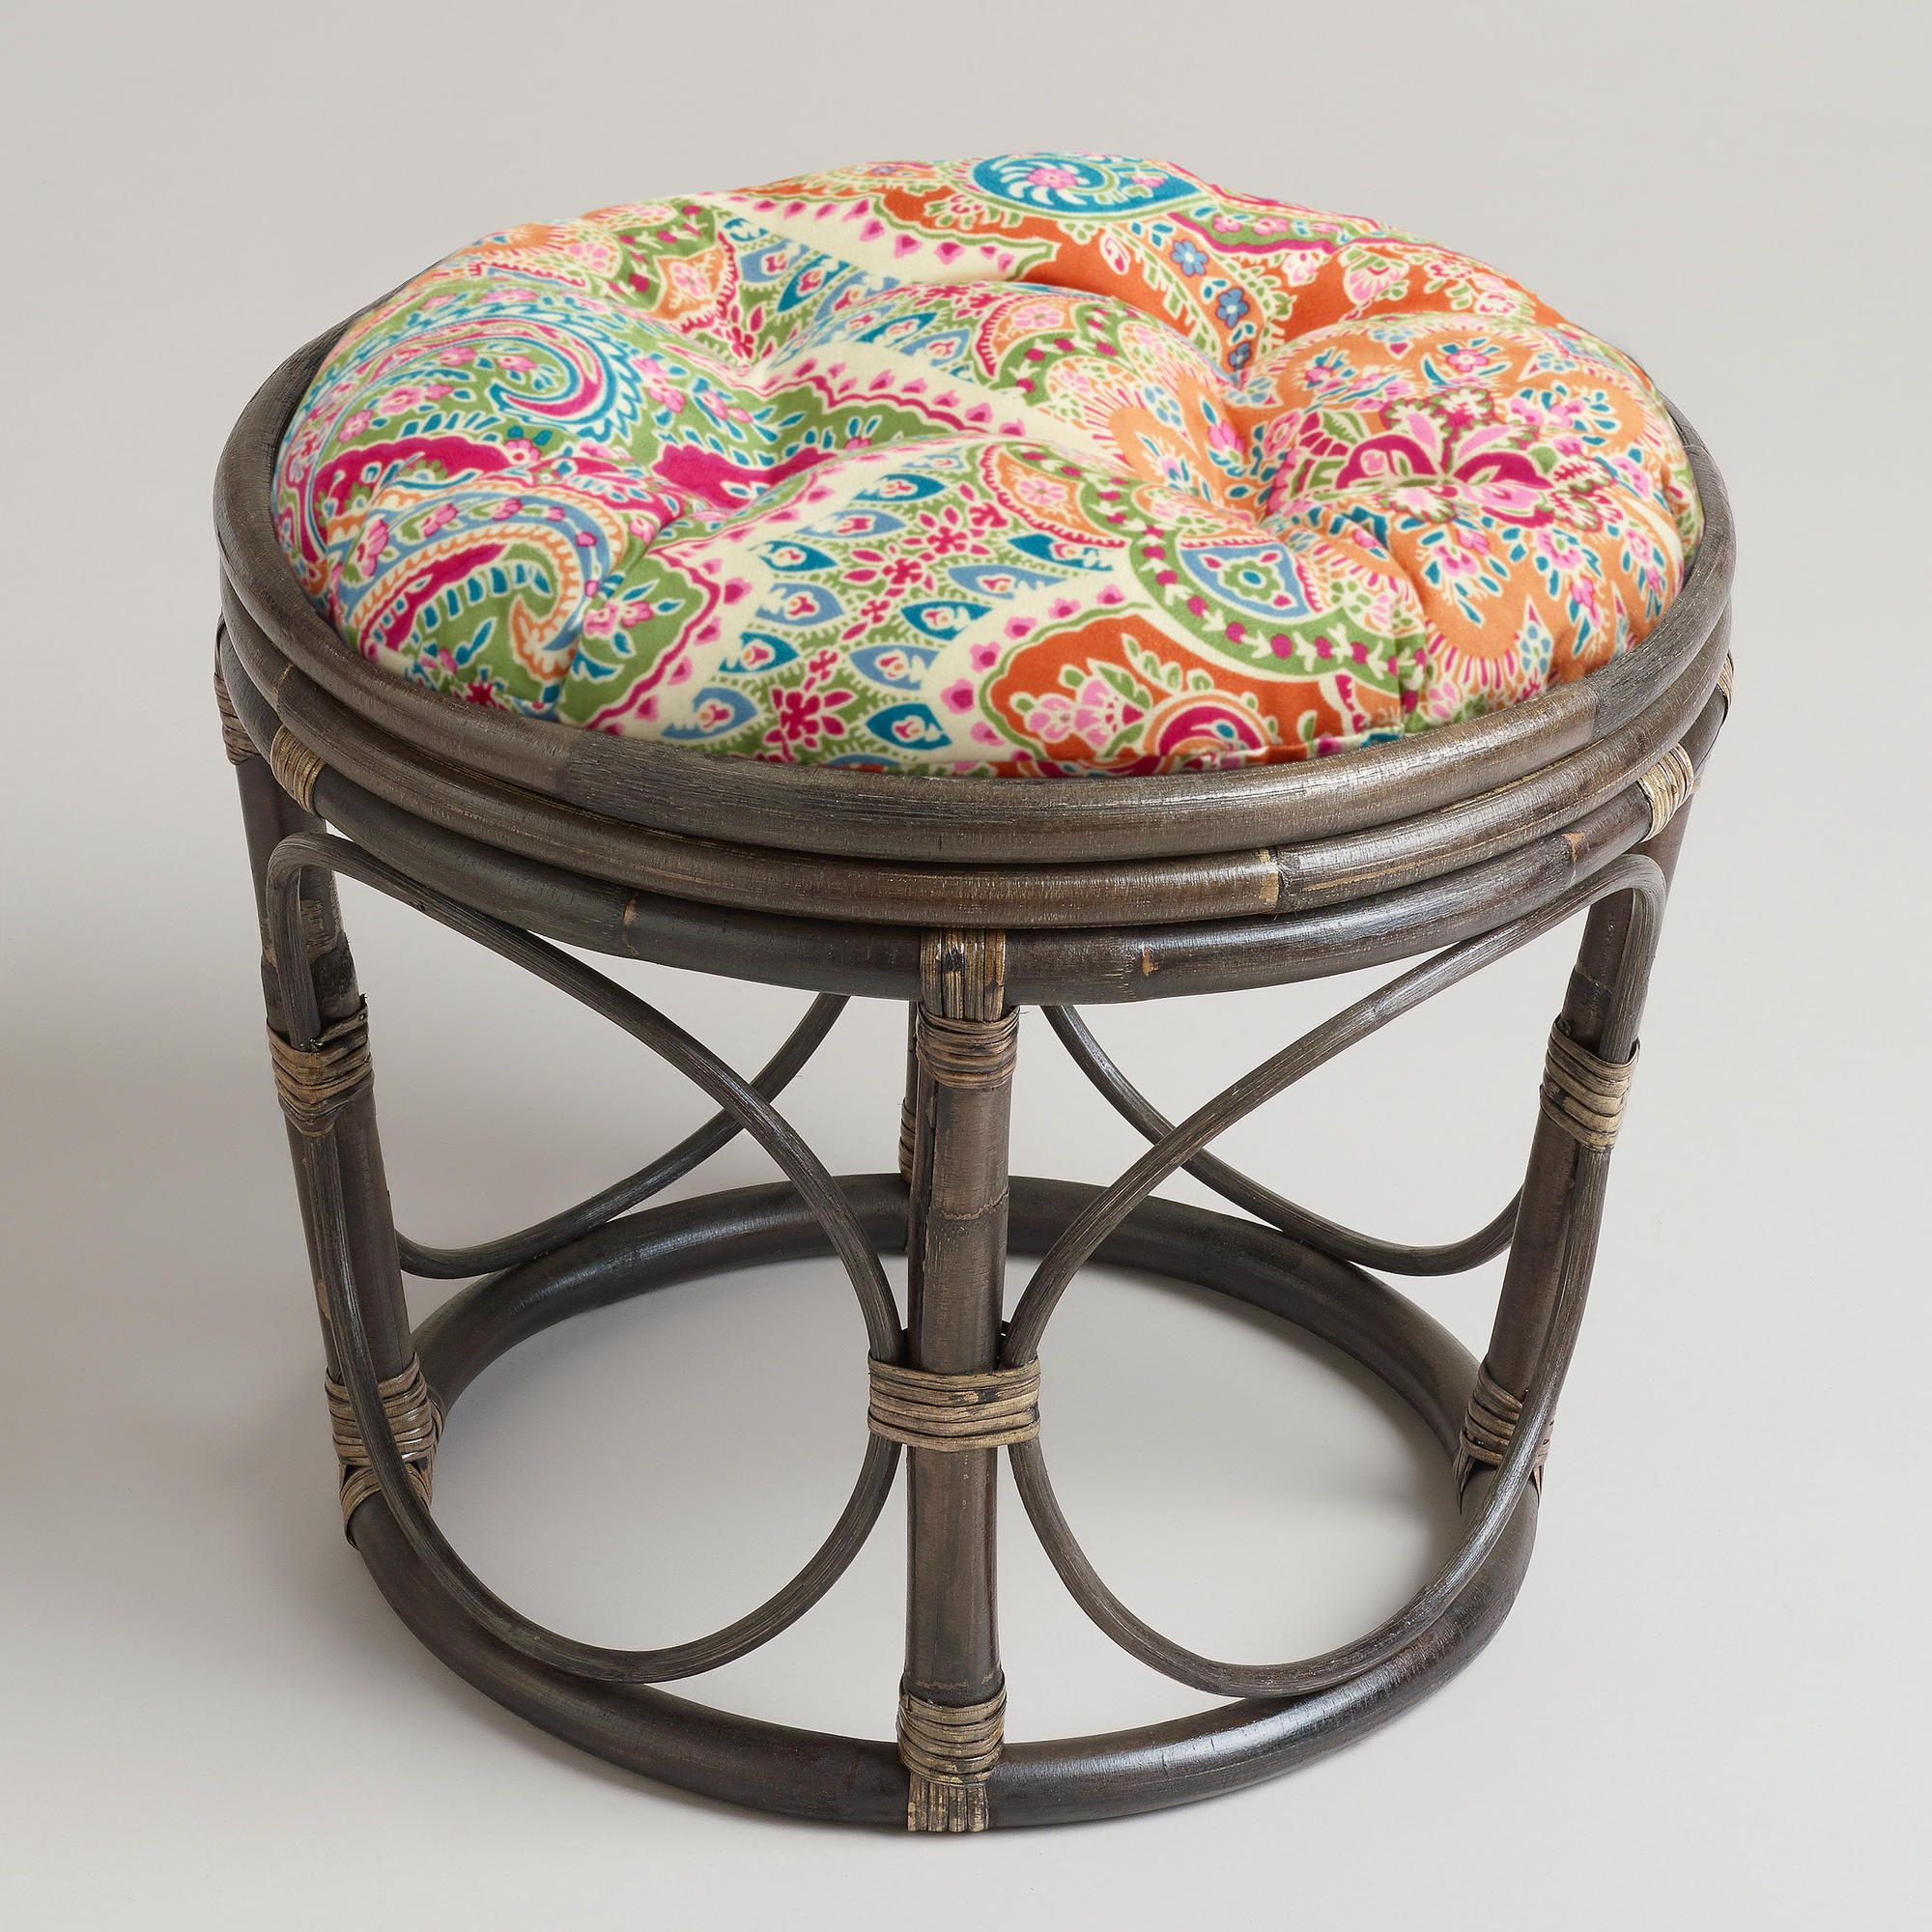 Venice Papasan Stool Cushion By World Market Found On Heartthis Com Heartthis Stool Cushion Papasan Chair Cushion Papasan